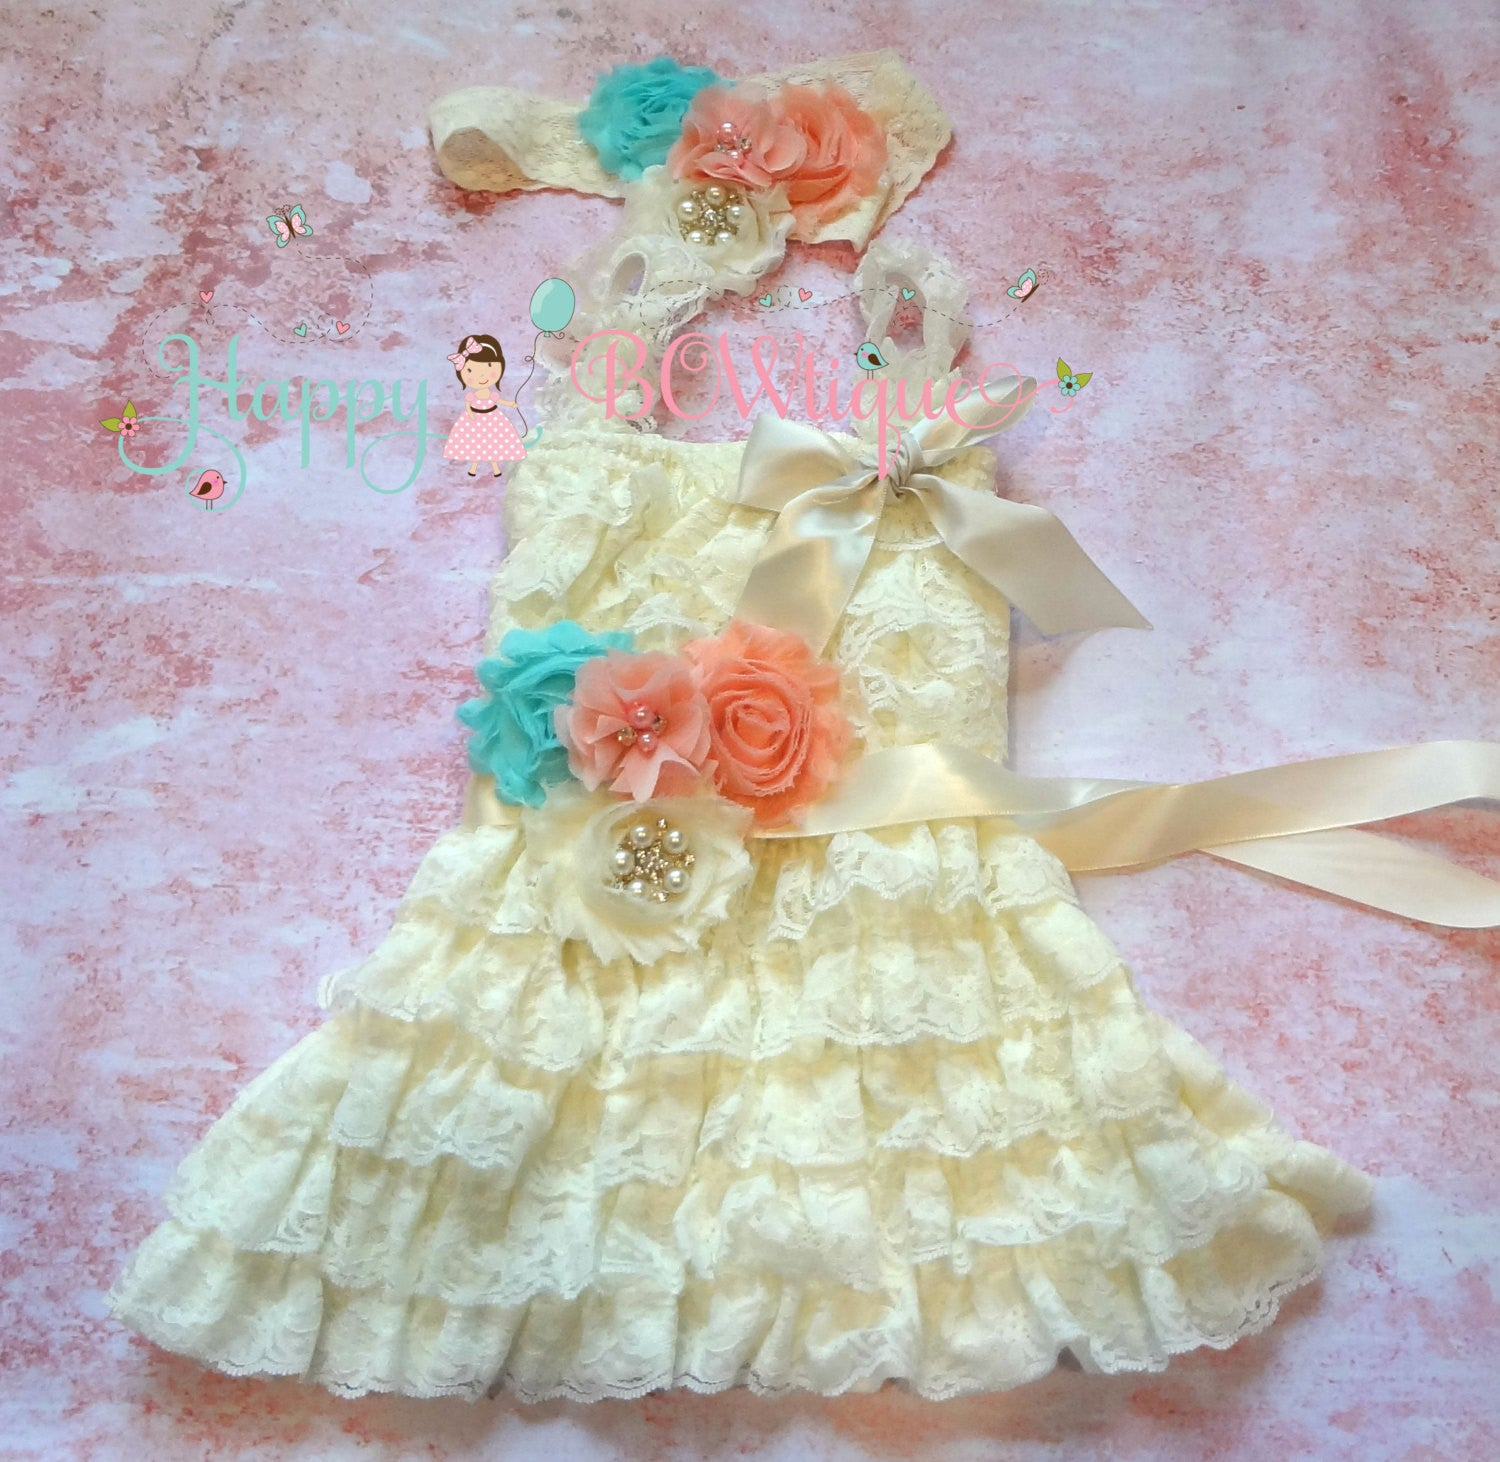 Girl's Ivory Dress/ Ivory Blush Peach Aqua Girl's Dress Set - Happy BOWtique - children's clothing, Baby Girl clothing